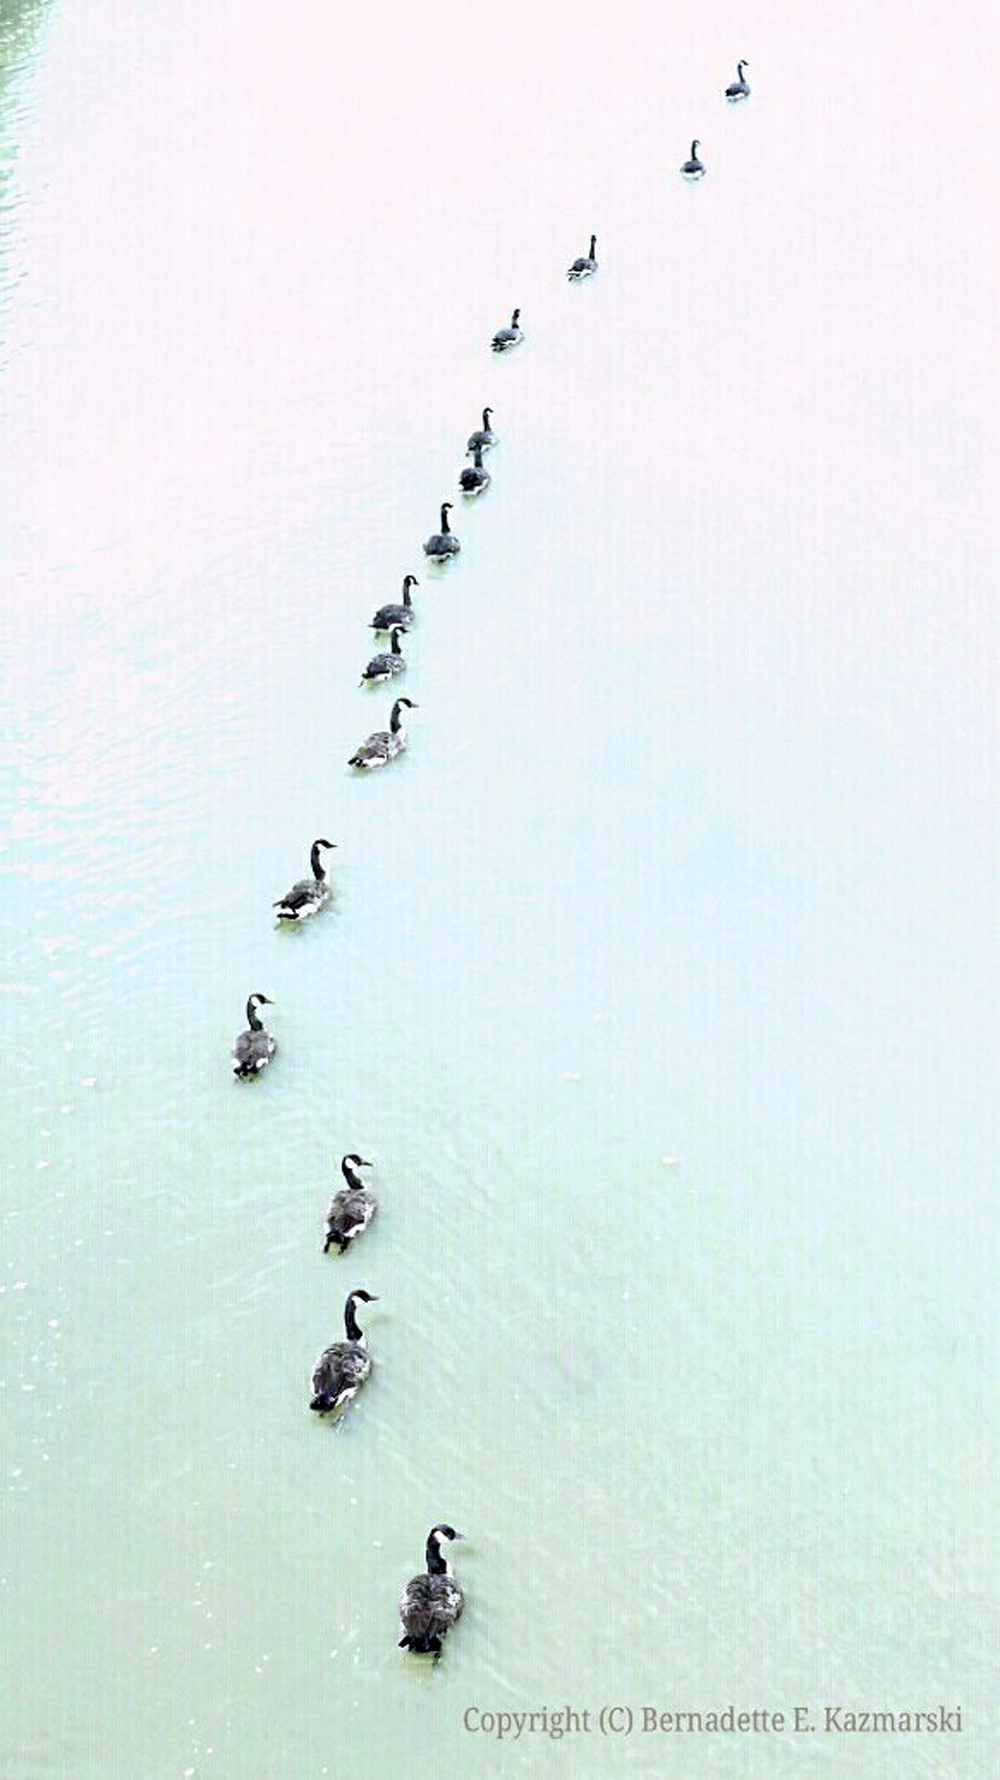 Get Your Geese in a Row